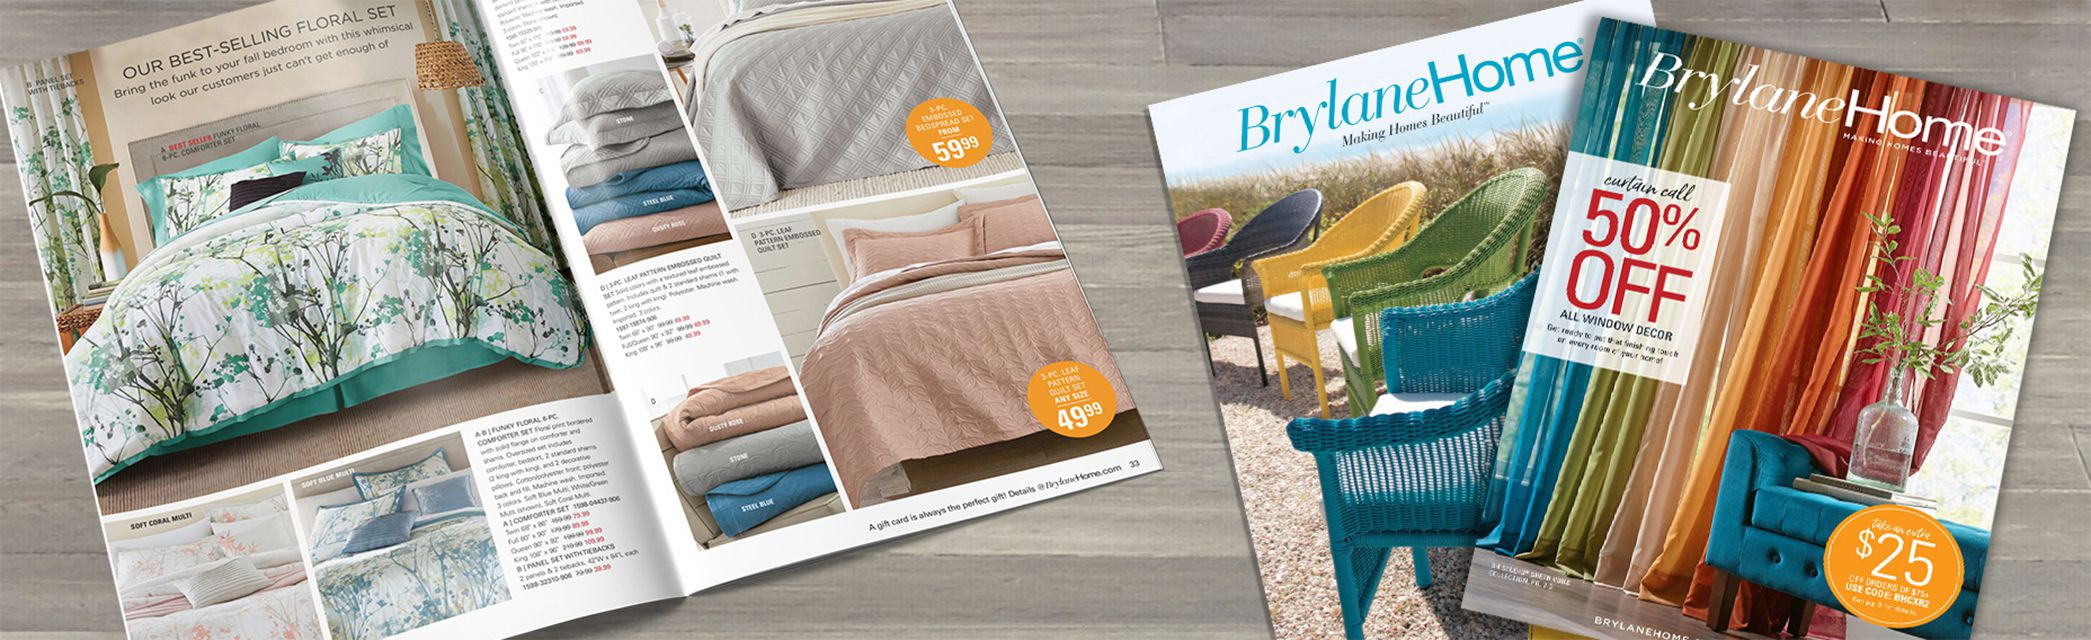 home decor catalogs home decor catalogs.htm how to request a free brylane home catalog  how to request a free brylane home catalog